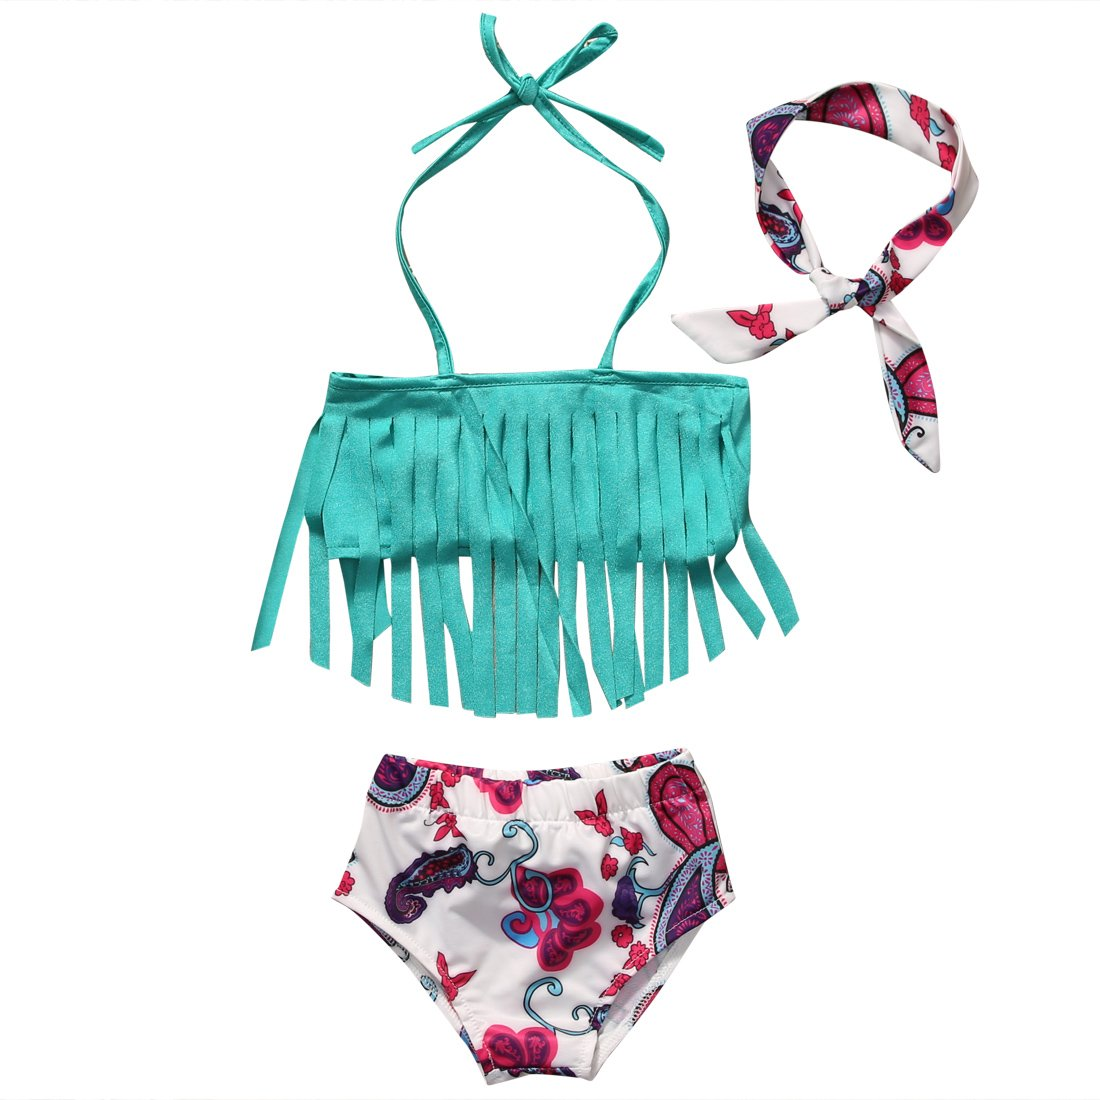 hirigin Baby Girls 3 Pcs Swimwear Tassels Halter Top+Floral Bottom+Headband Swimsuit FT16055